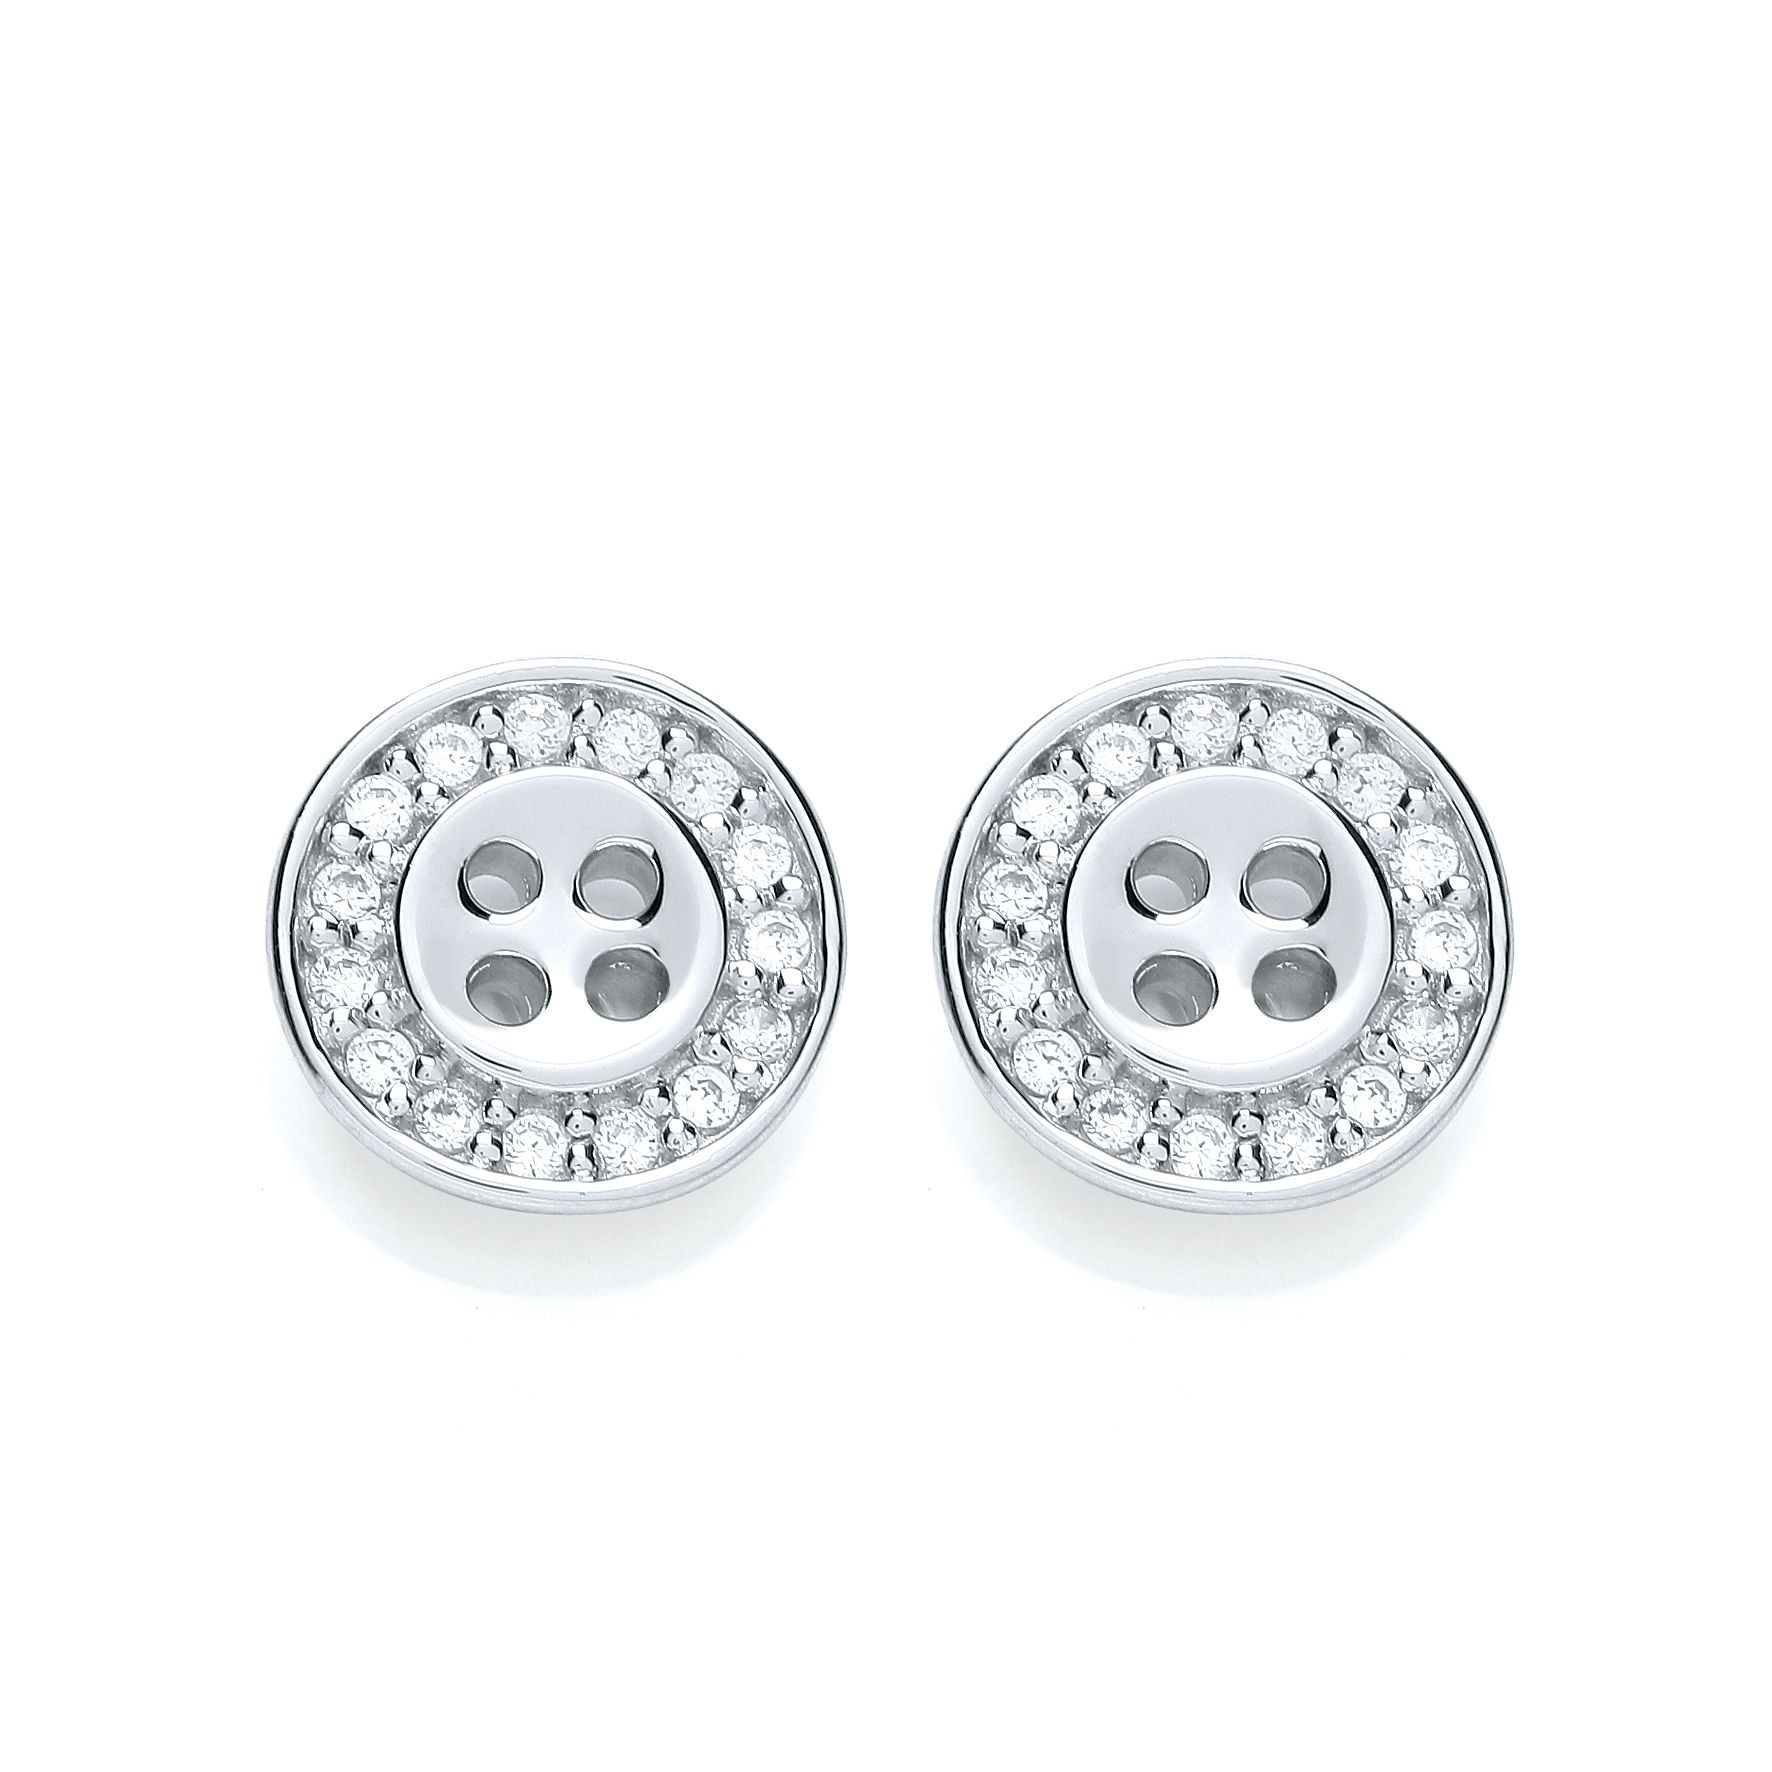 Classic bouton stud earrings